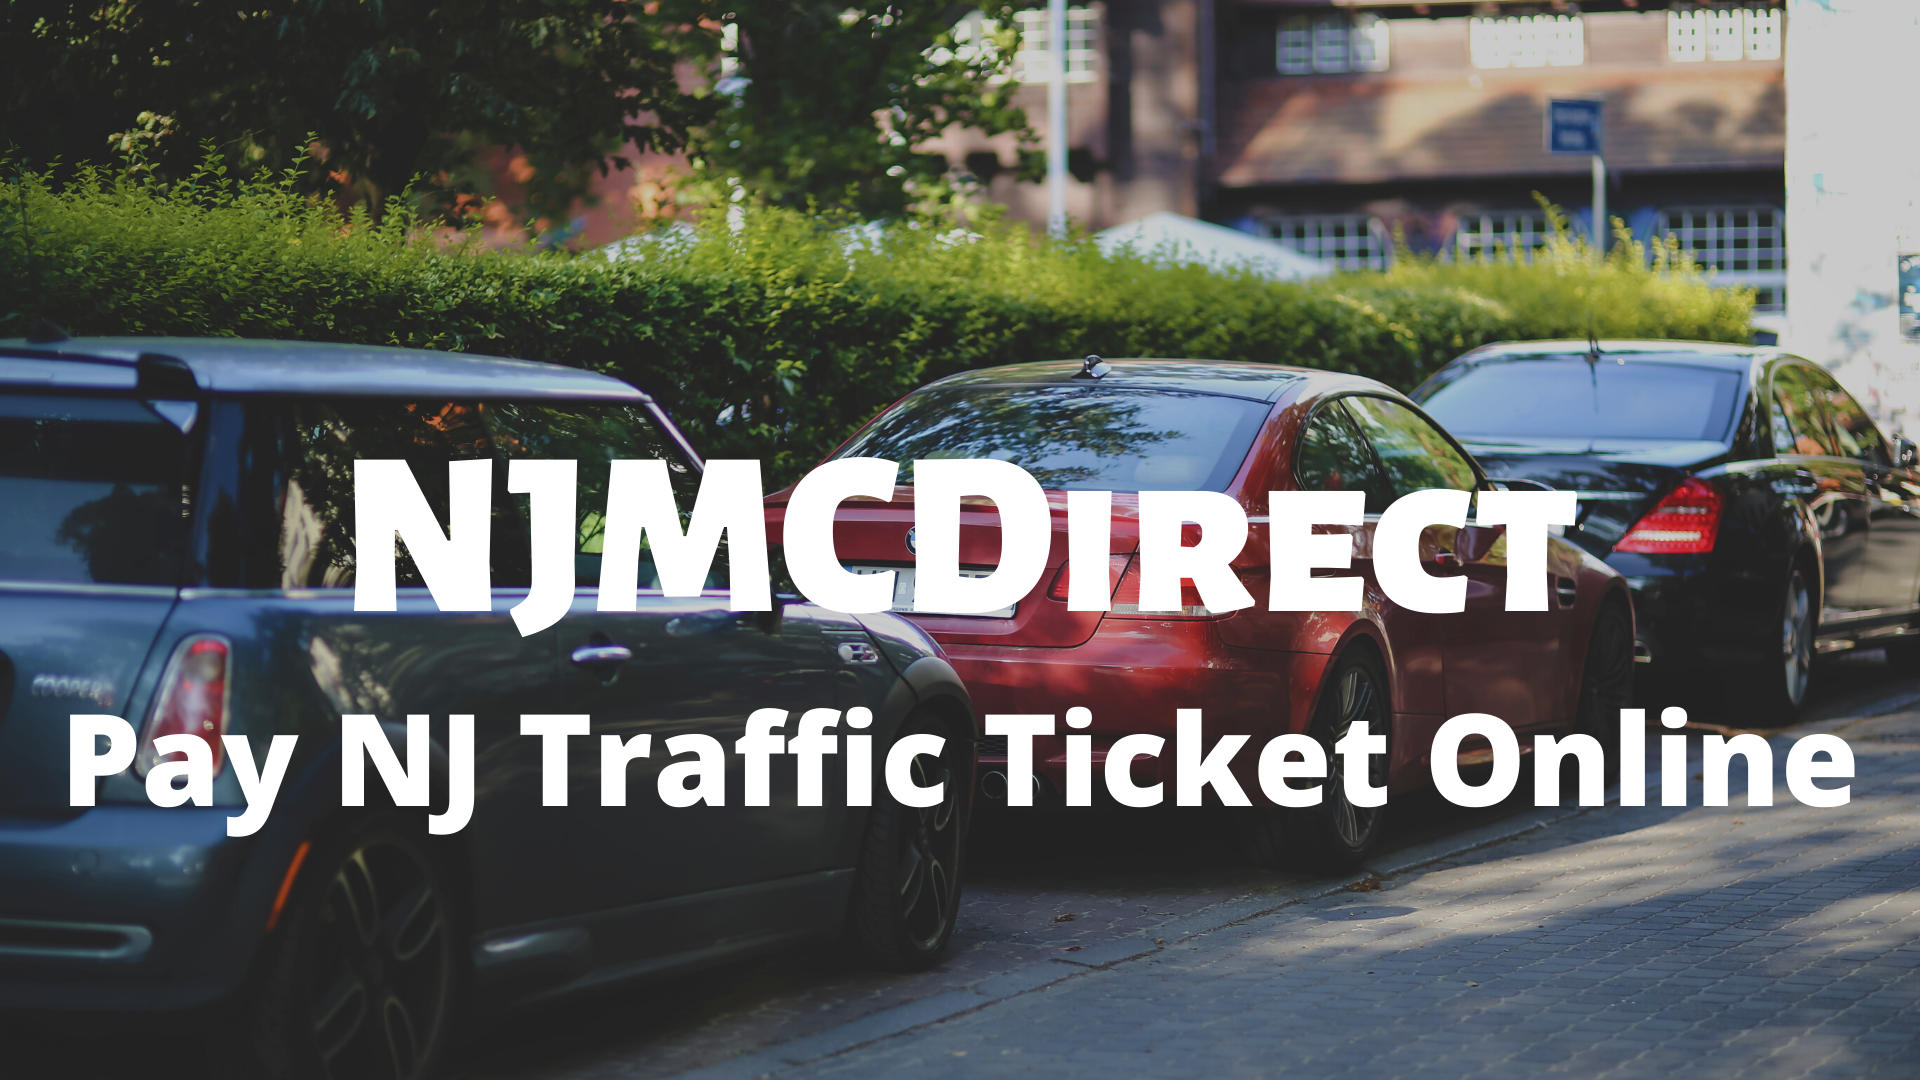 NJMCDirect (www.njmcdirect.com) | Pay NJ Traffic Ticket Online